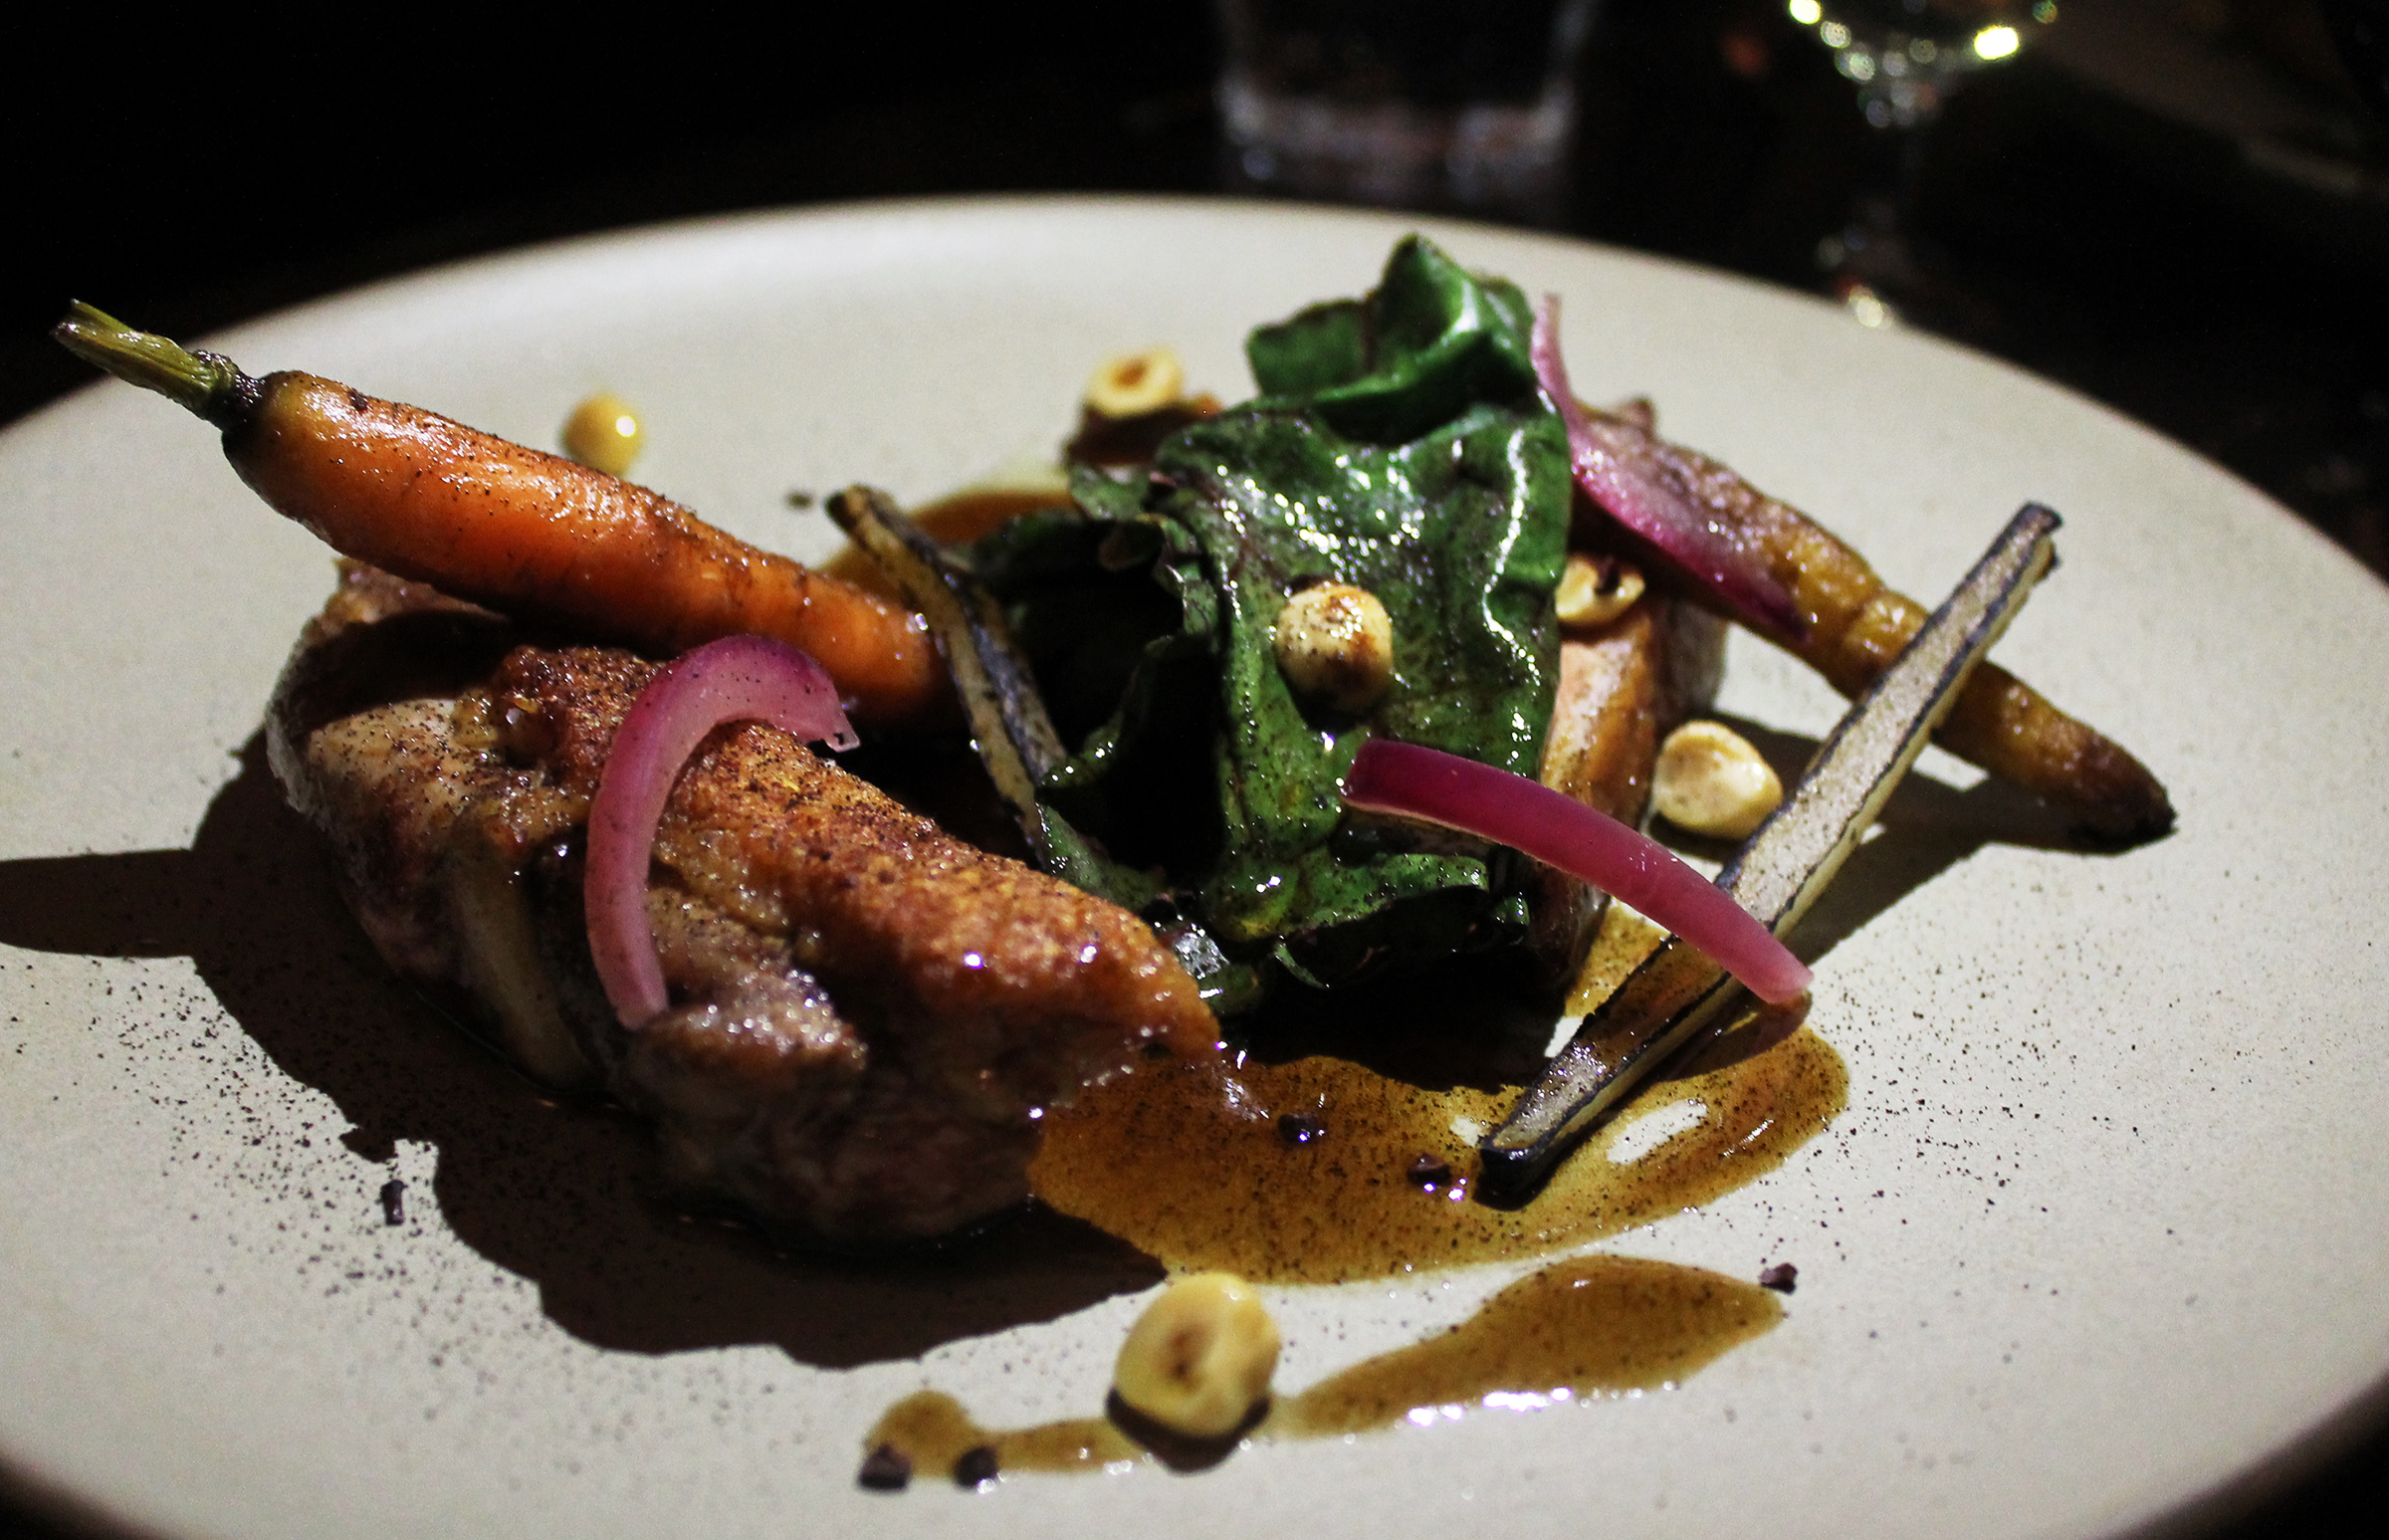 Duck Breast with Carrots, Chard, and Chocolate